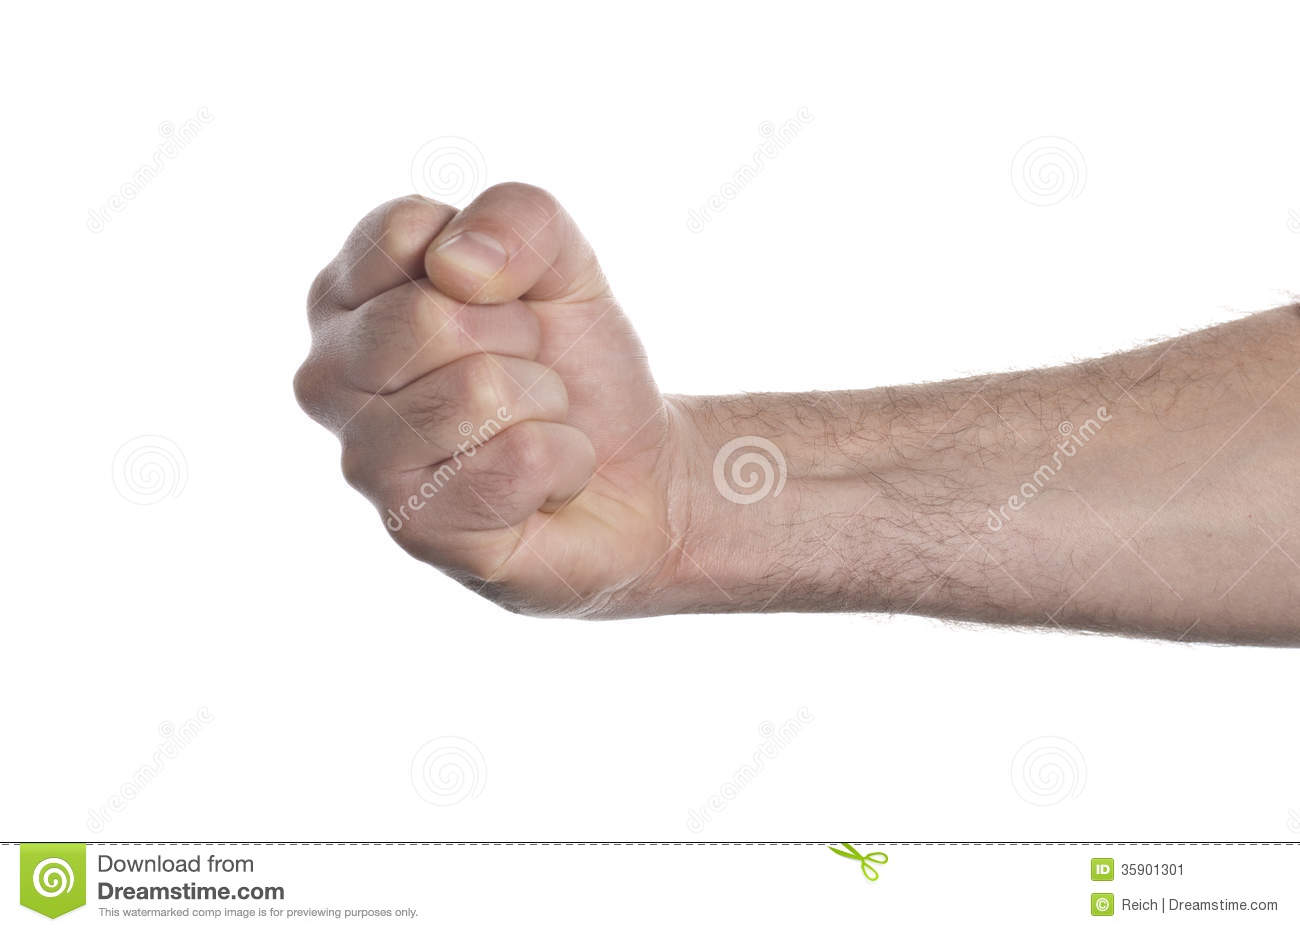 Punch fist isolated on a white background.